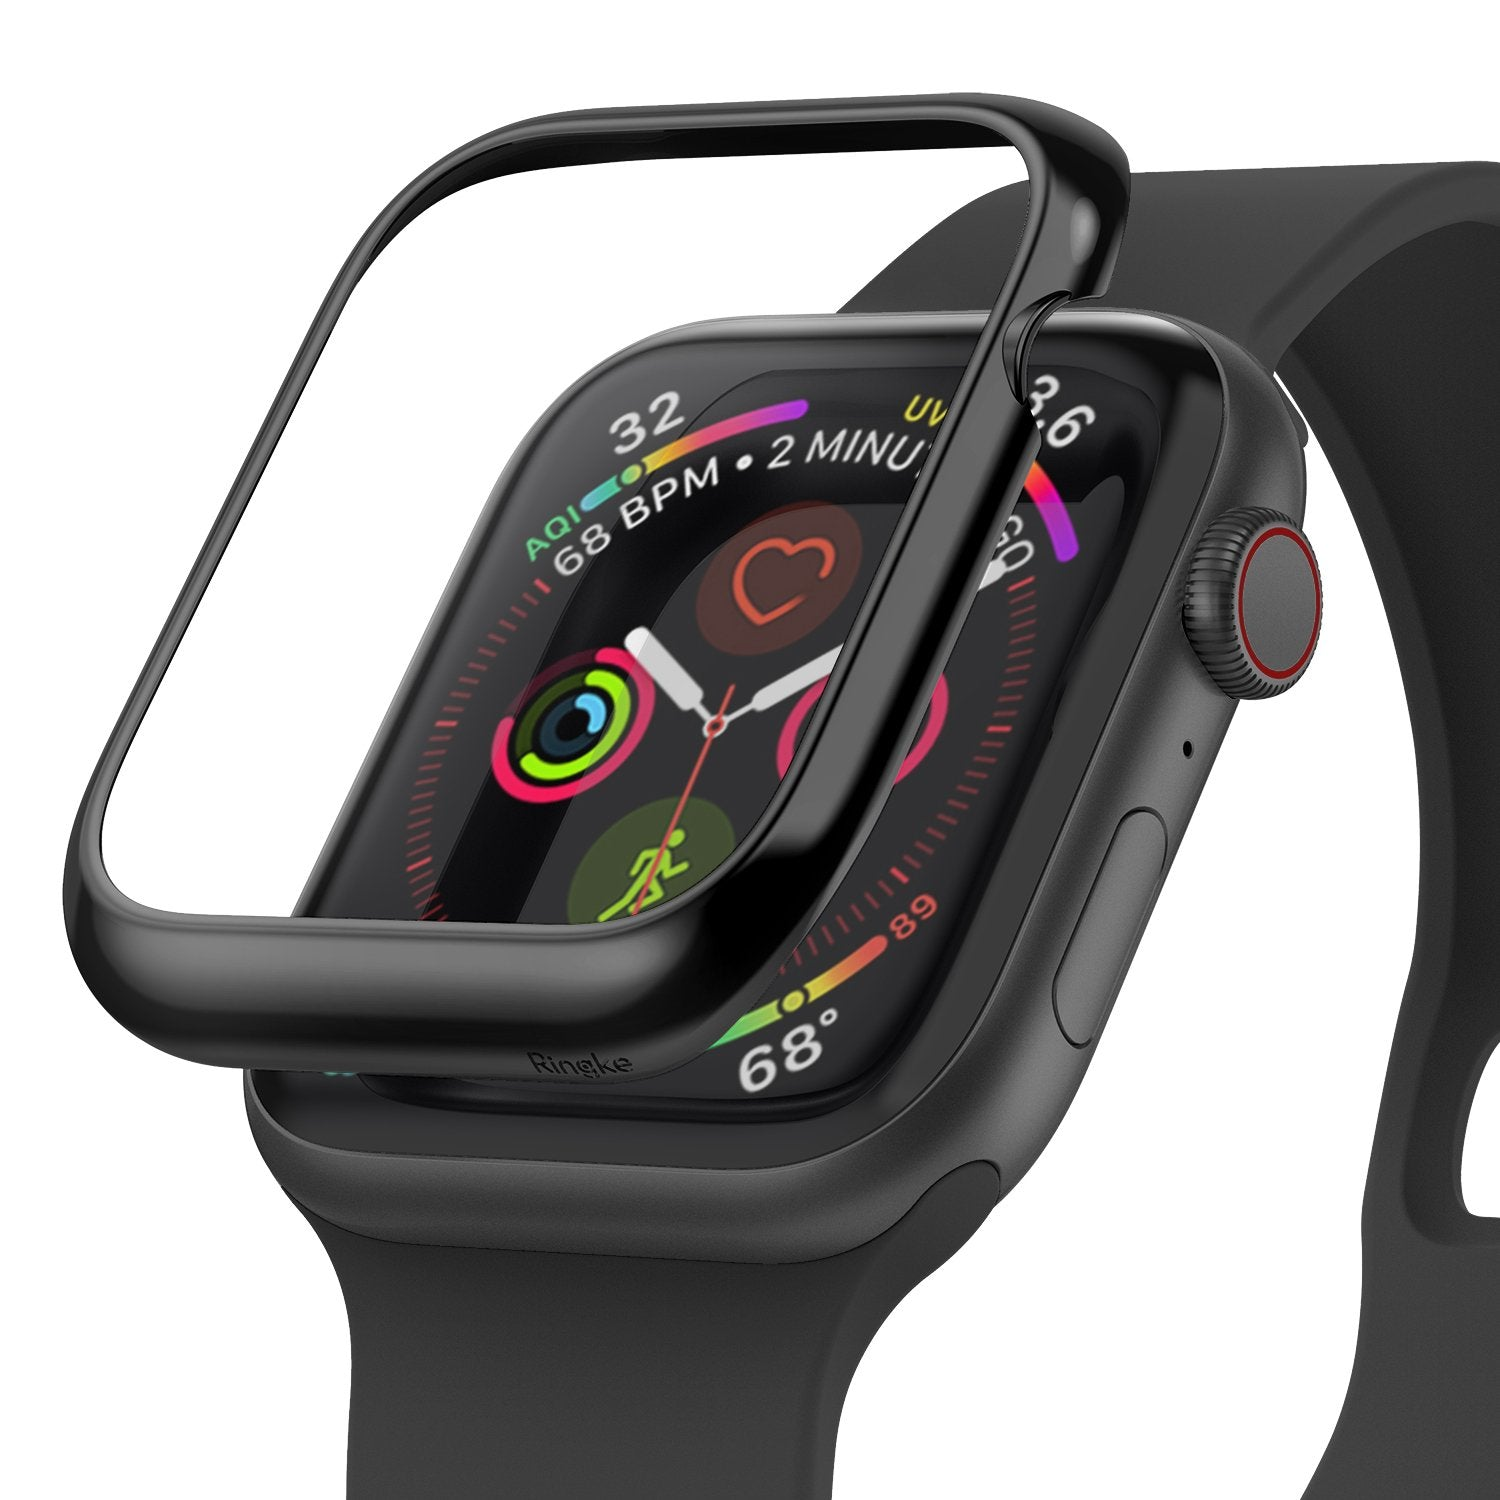 ringke bezel styling 40-03 glossy black stainless steel on apple watch series 6 / 5 / 4 / SE 40mm